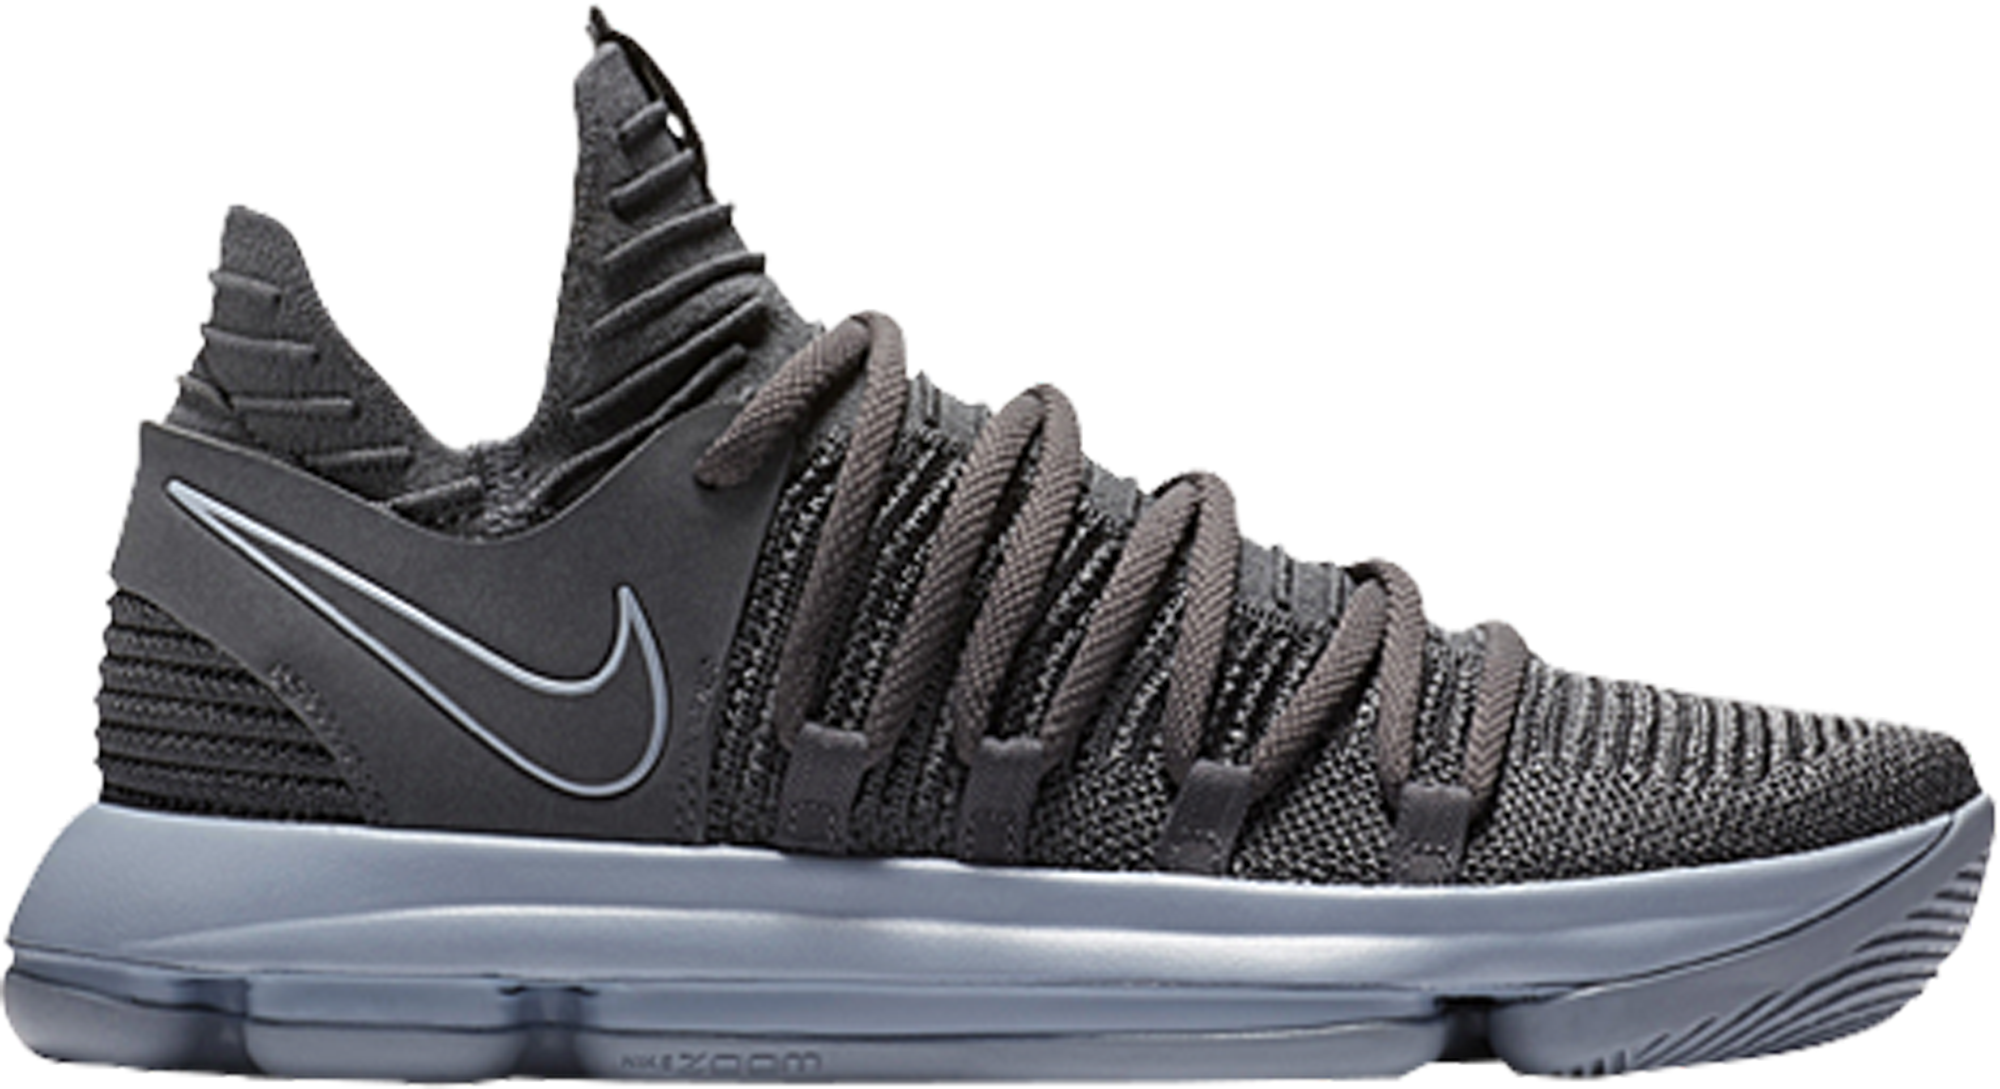 buy popular 5ae21 c866a switzerland nike zoom kd10 13cea 3ab73  best price kd 10 dark grey 7e2f2  dc23f